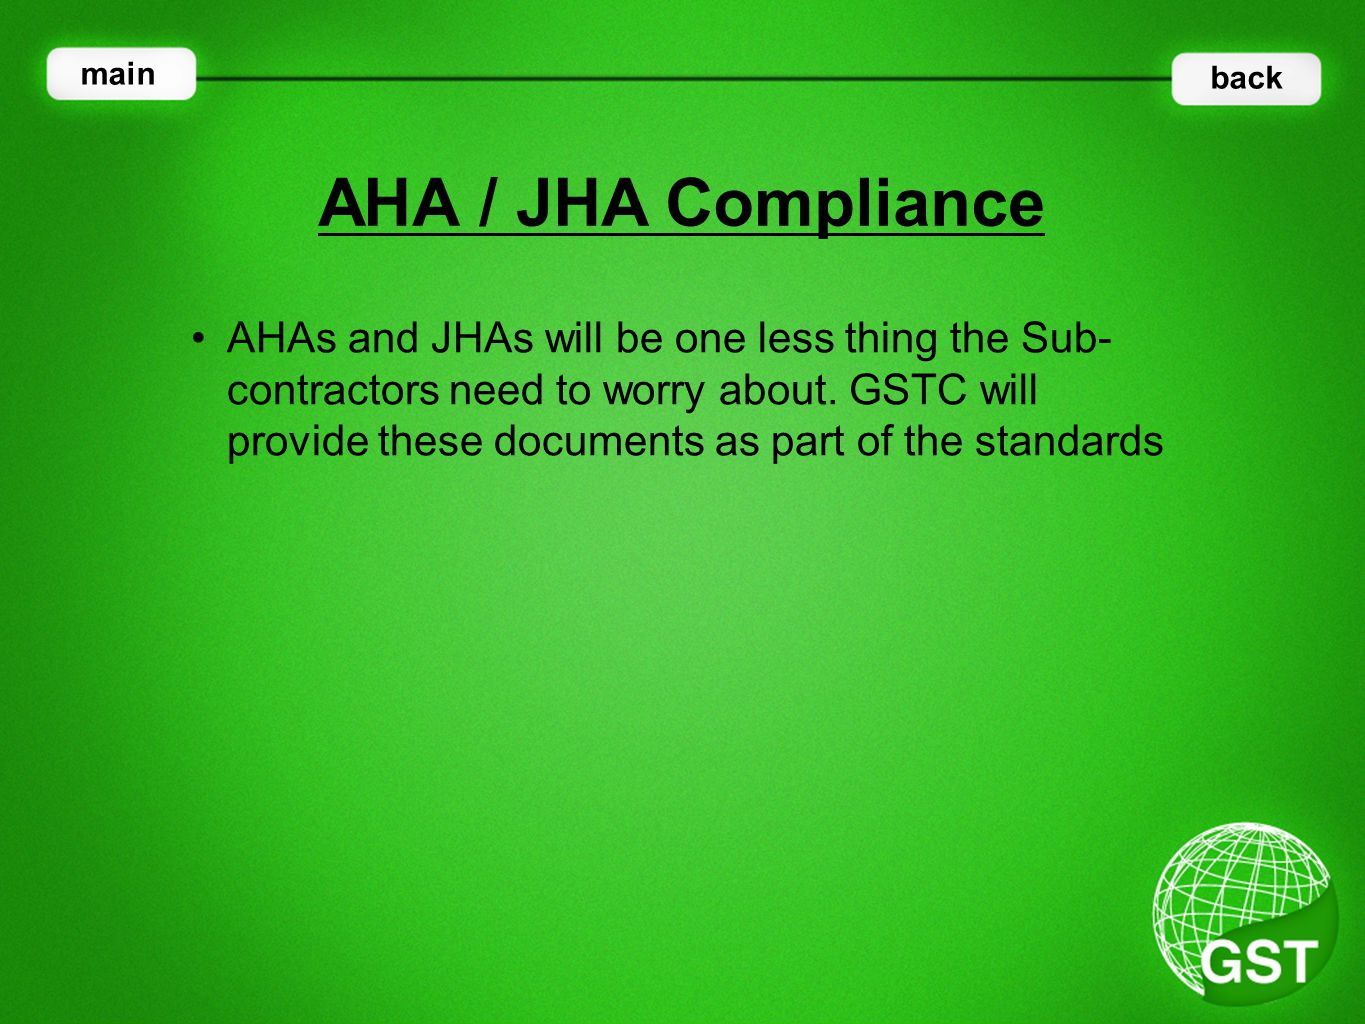 AHAs and JHAs will be one less thing the Sub- contractors need to worry about.